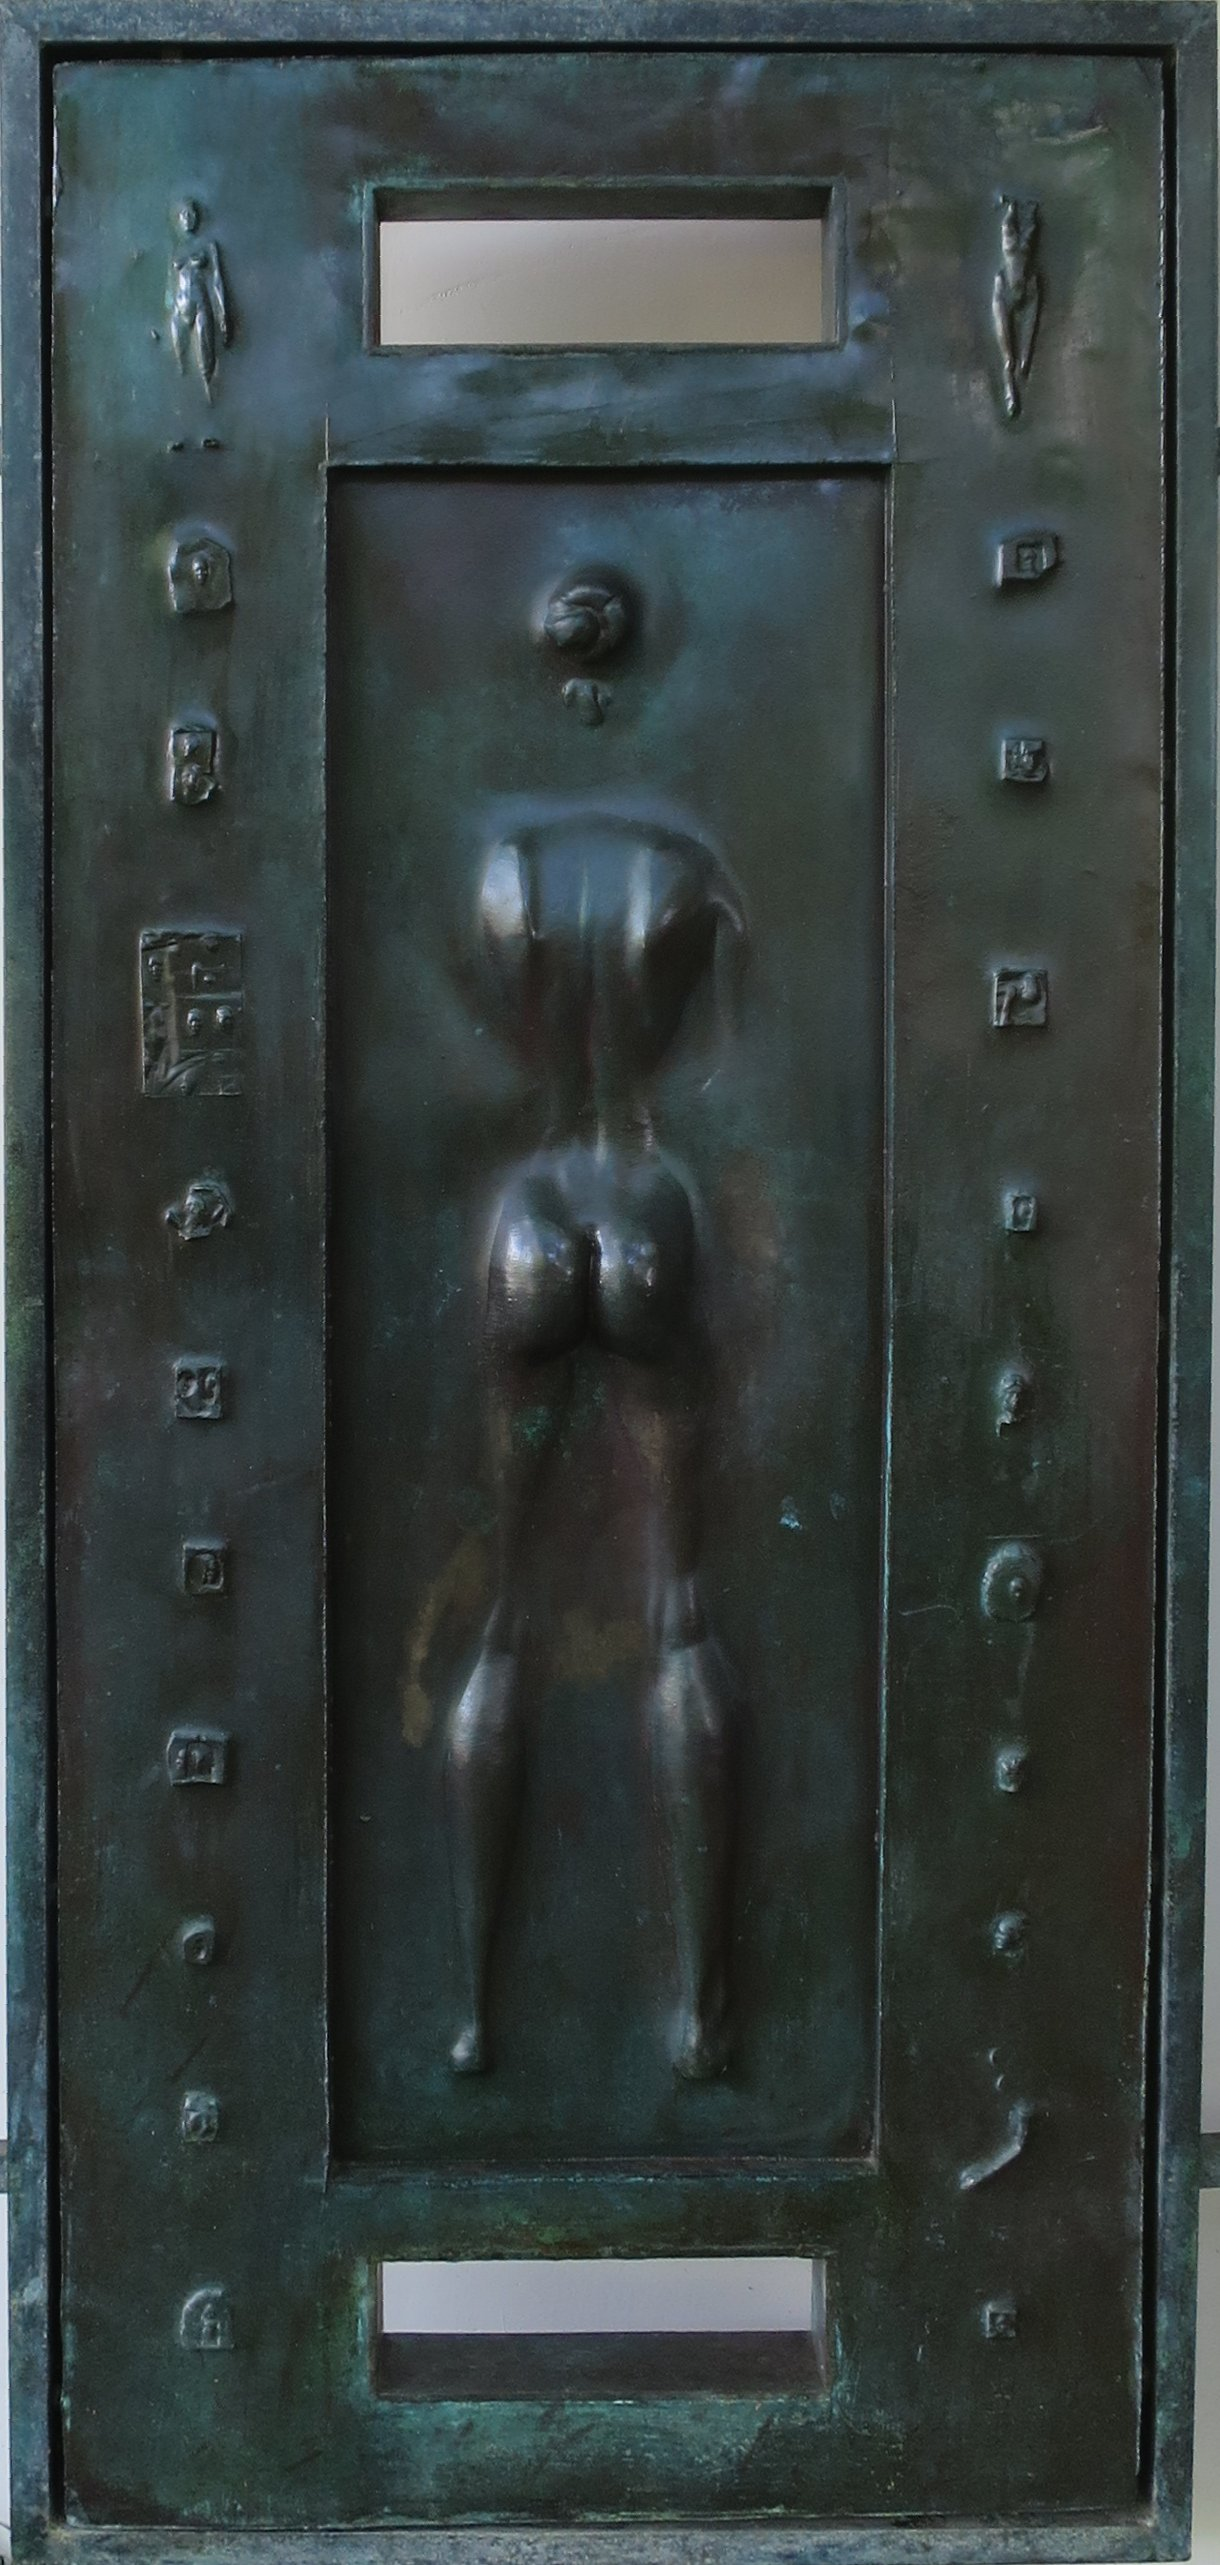 FileDetail of front doors of Spalding House by Robert Graham cast bronze & File:Detail of front doors of Spalding House by Robert Graham ...